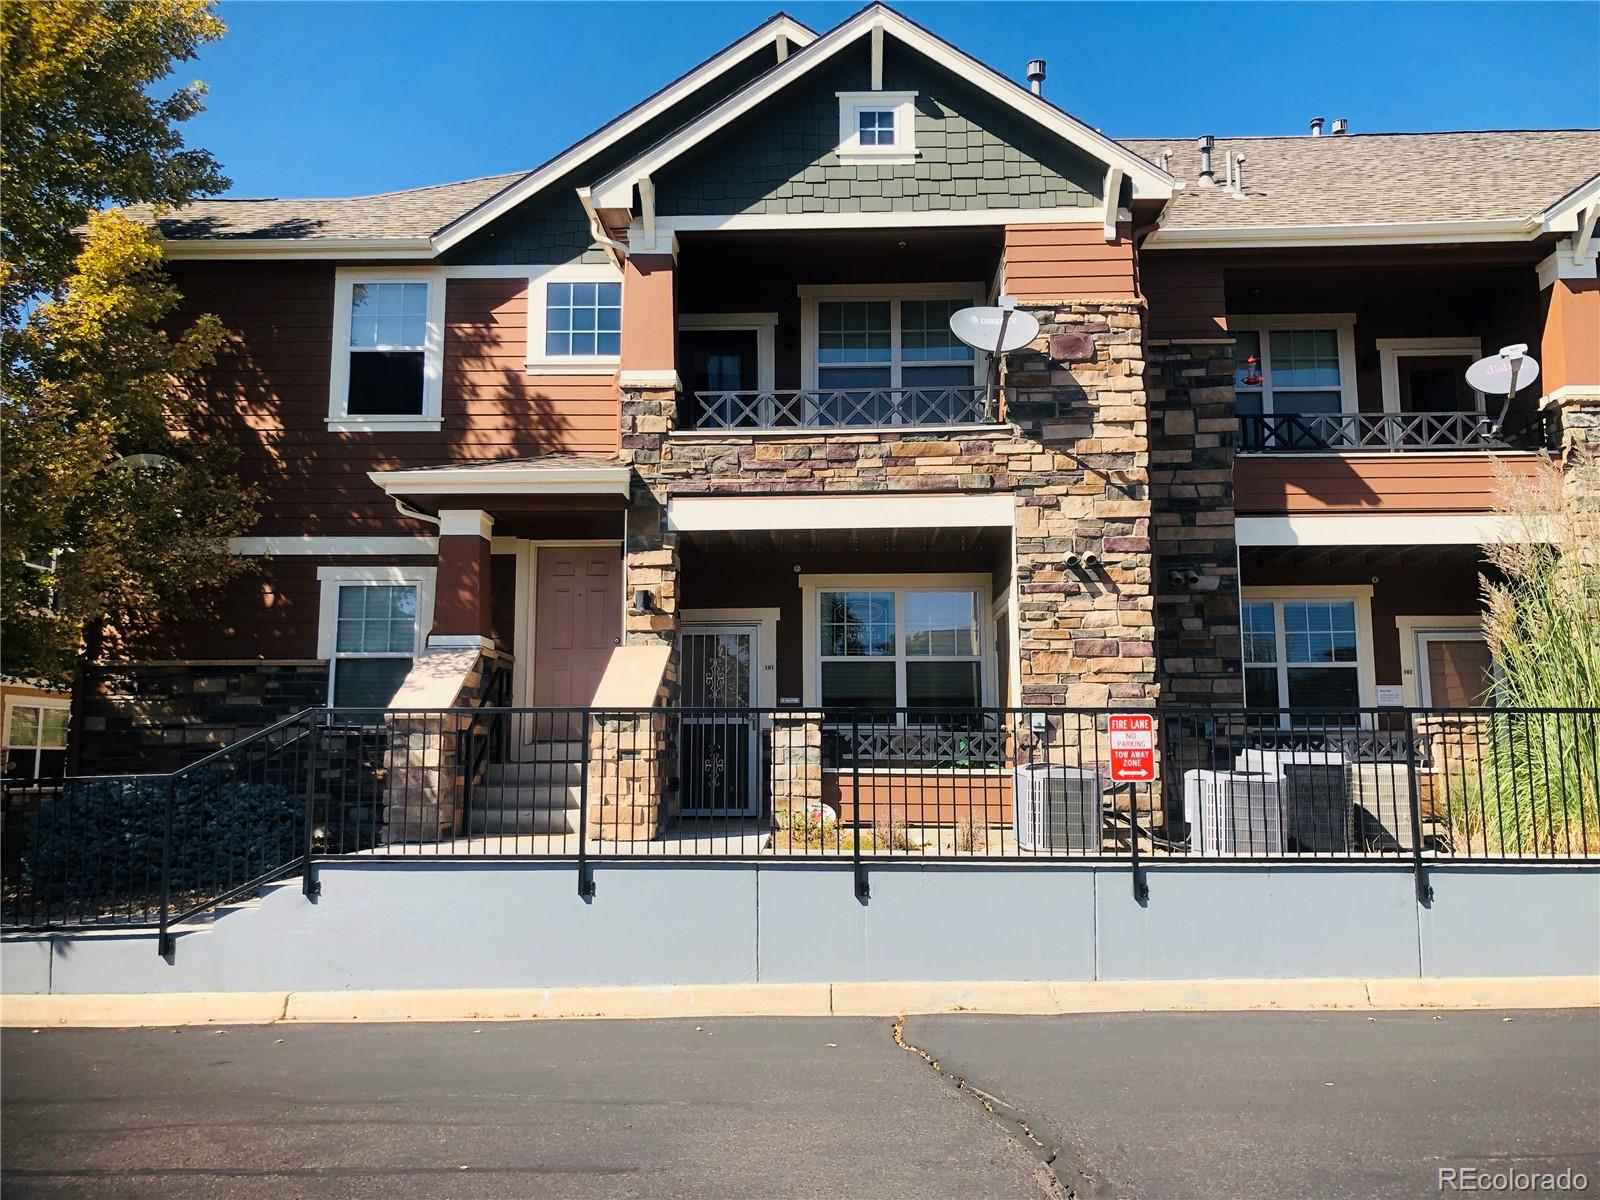 The perfect condo located in the heart of Arvada. beautiful newer condo features open floor plan.  light and bright large living room with fireplace.  2 bedroom 2 bath, large kitchen with lots of cabinets and newer appliances.  balconies with storage, one car garage! located right across from the swimming pool club house. This home has been well maintained and is ready for any of your buyers great for first time home buyers through down-sizers. The location can't be beat!